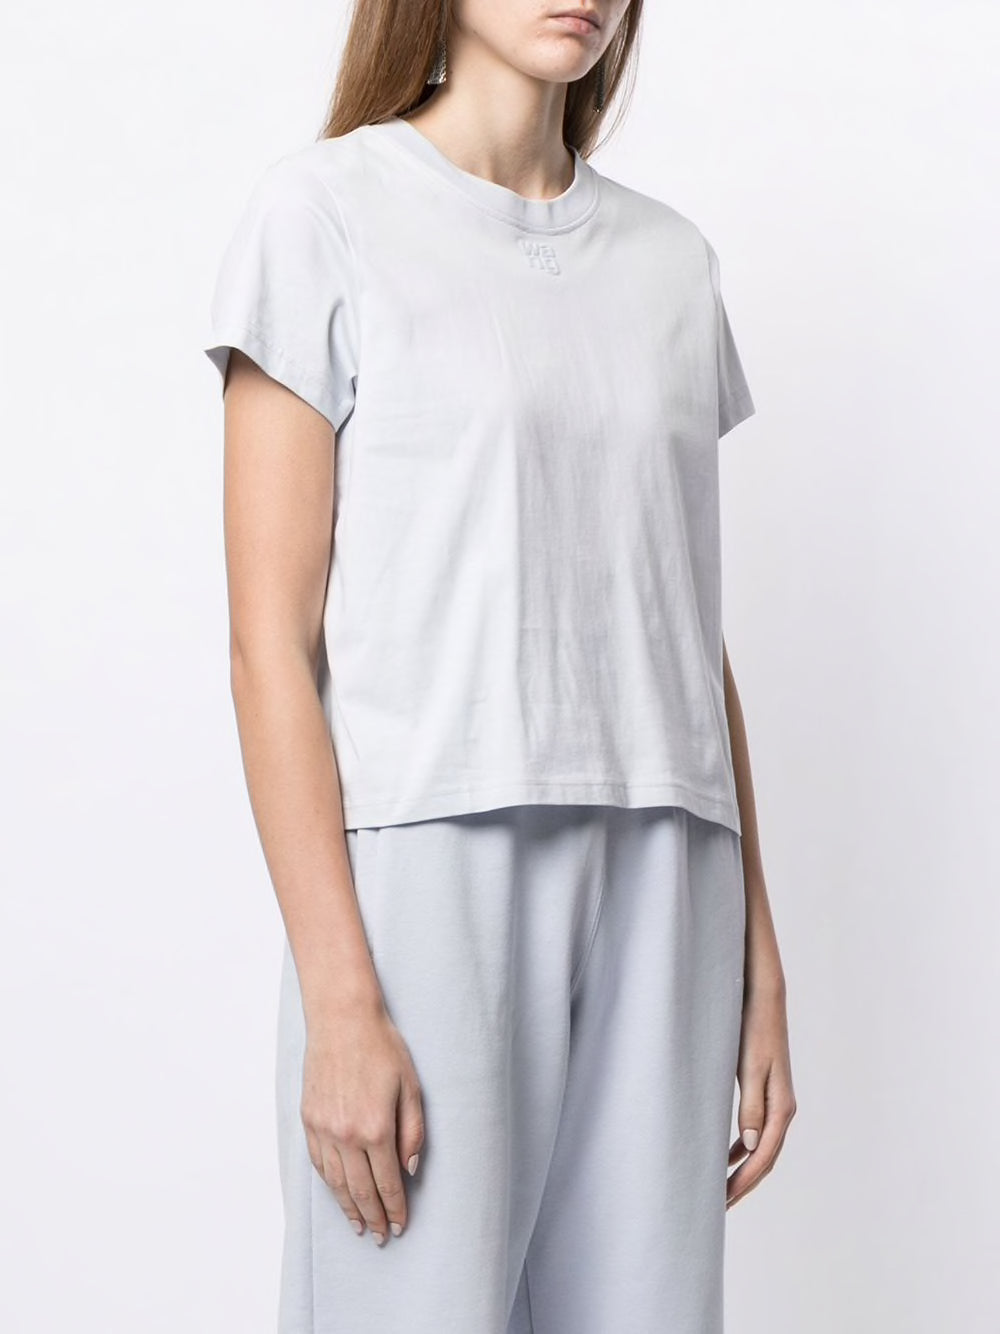 T BY ALEXANDER WANG WOMEN FOUNDATION JERSEY SHRUNKEN TEE W/PUFF PAINT LOGO